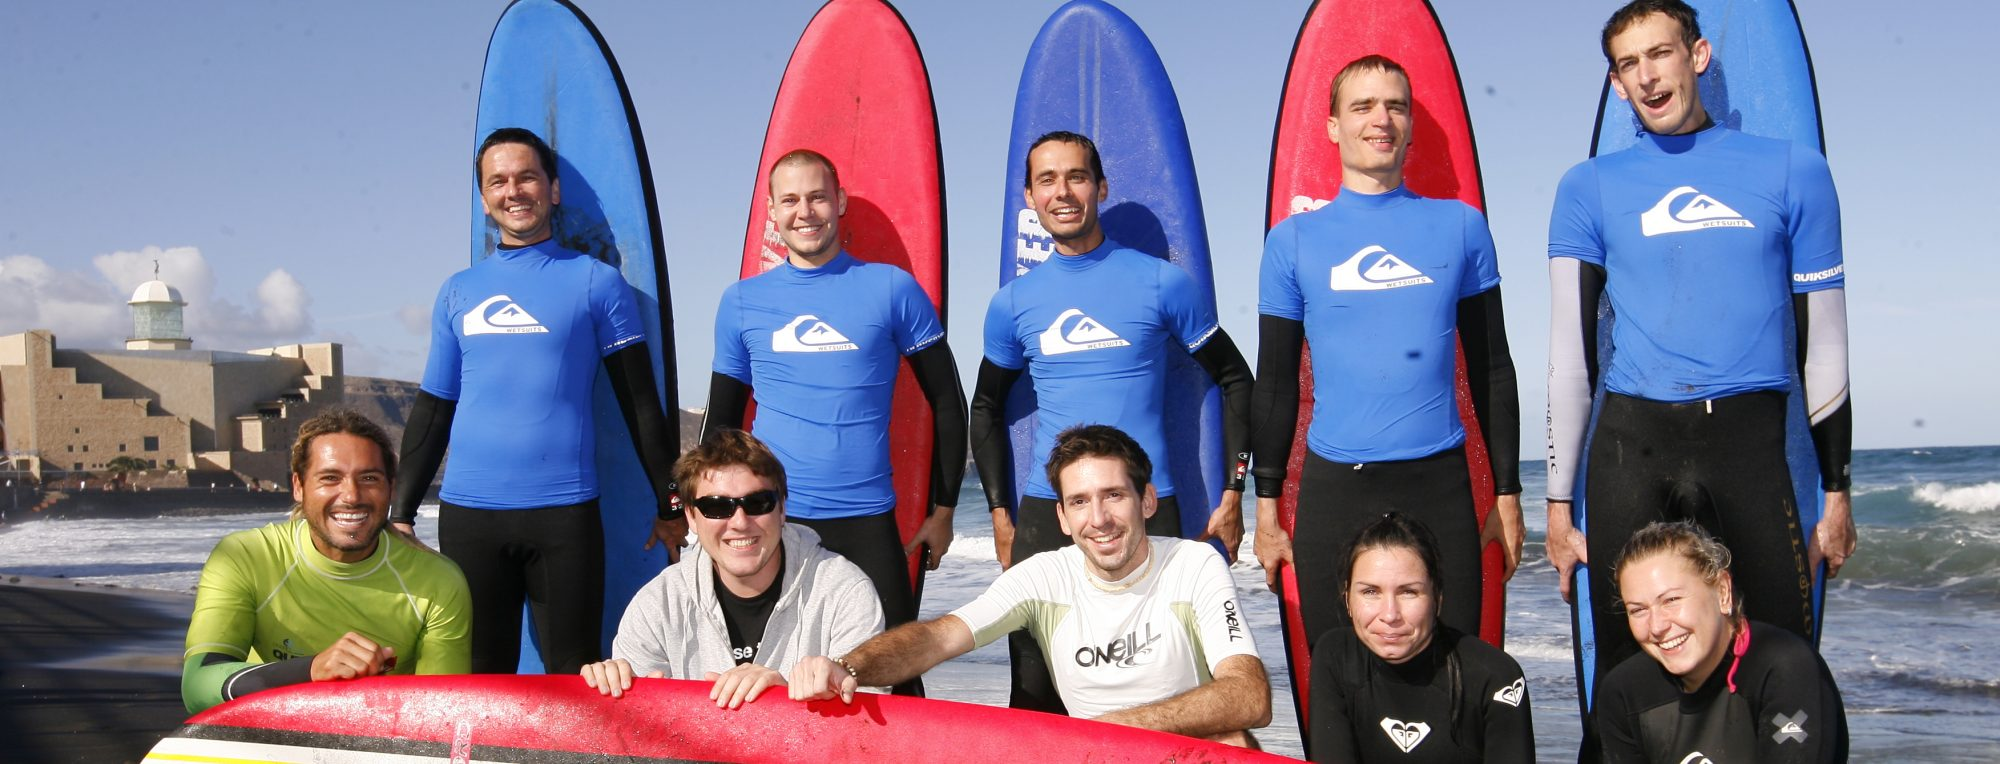 Slovak Surfing Association